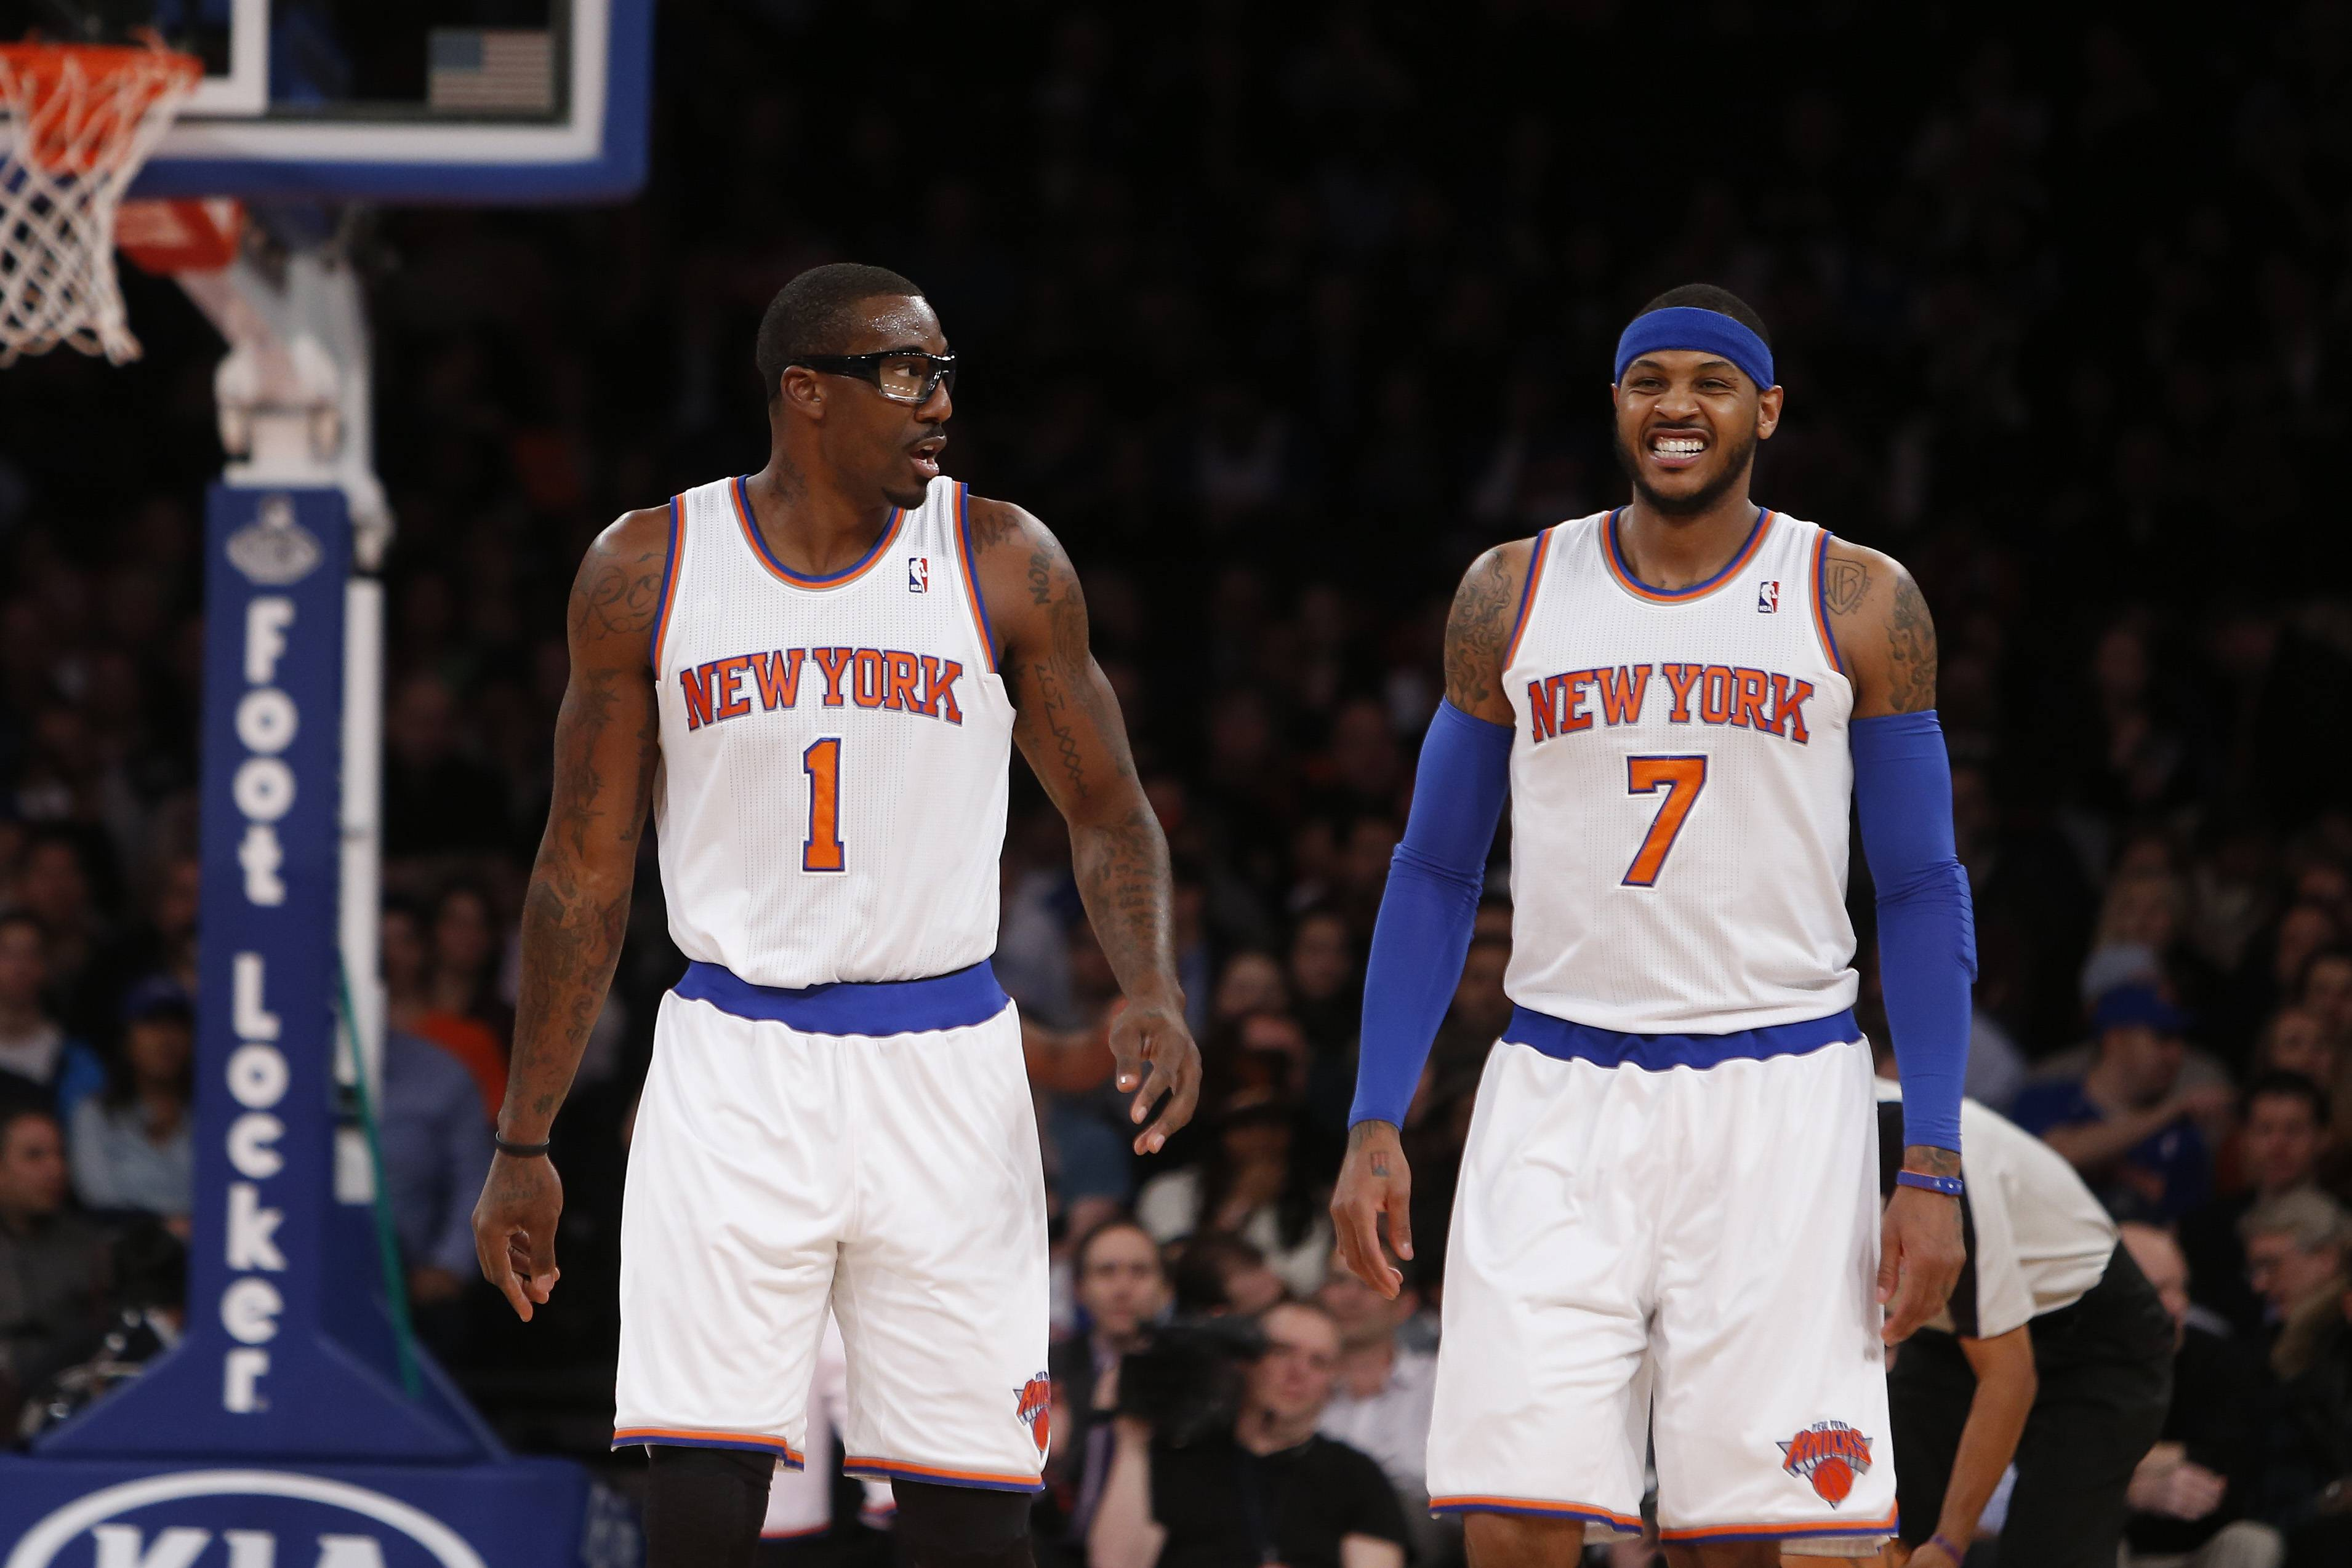 How long will Amar'e Stoudemire, left, and Carmelo Anthony be teammates? Anthony will be a free agent at the end of this season.